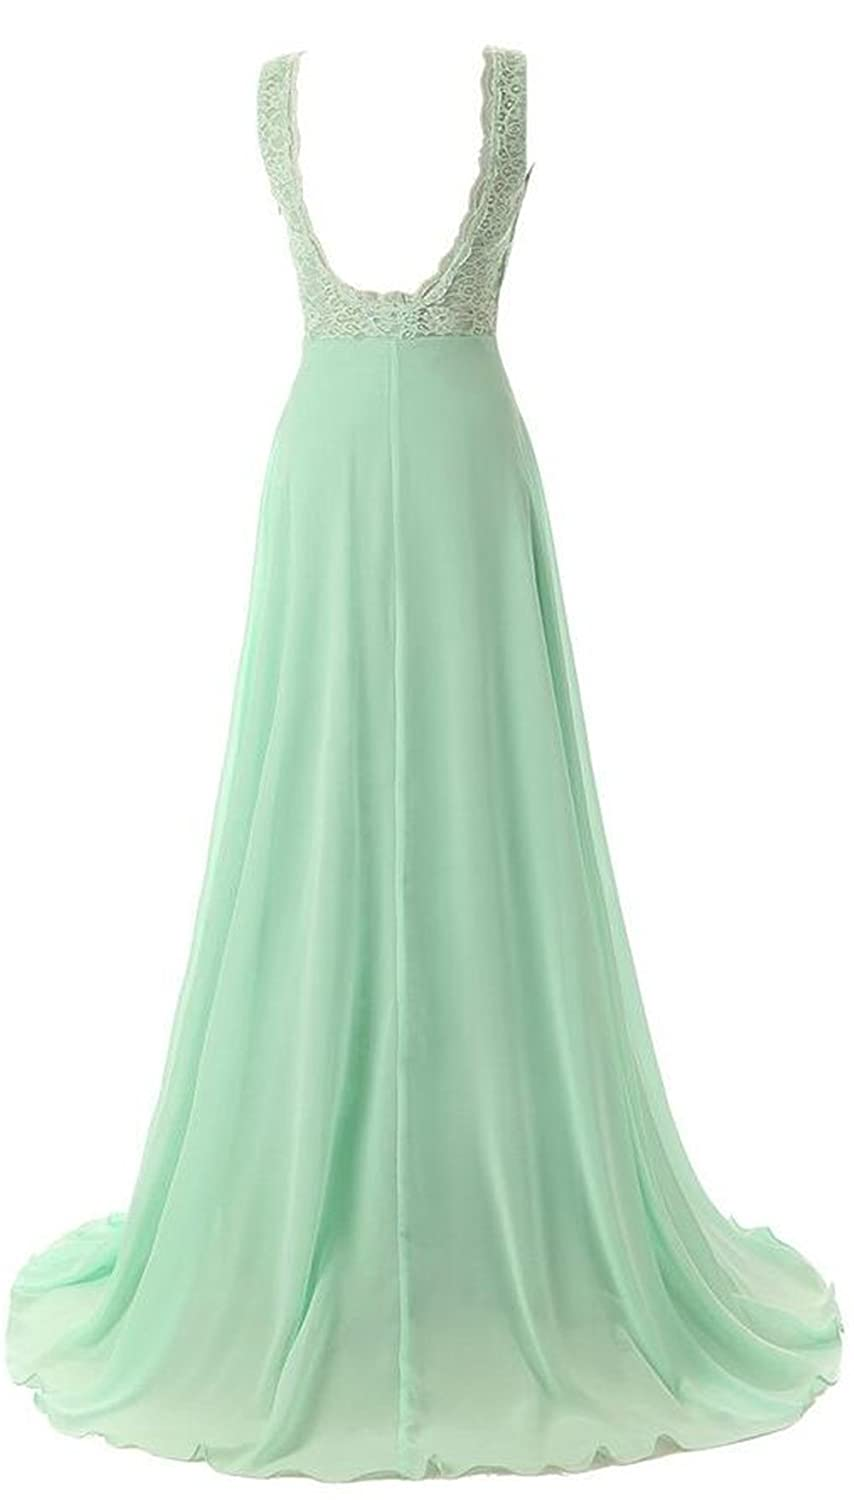 AngelDragon A-Line Lace Long Chiffon Evening Gowns Backless Prom Dress